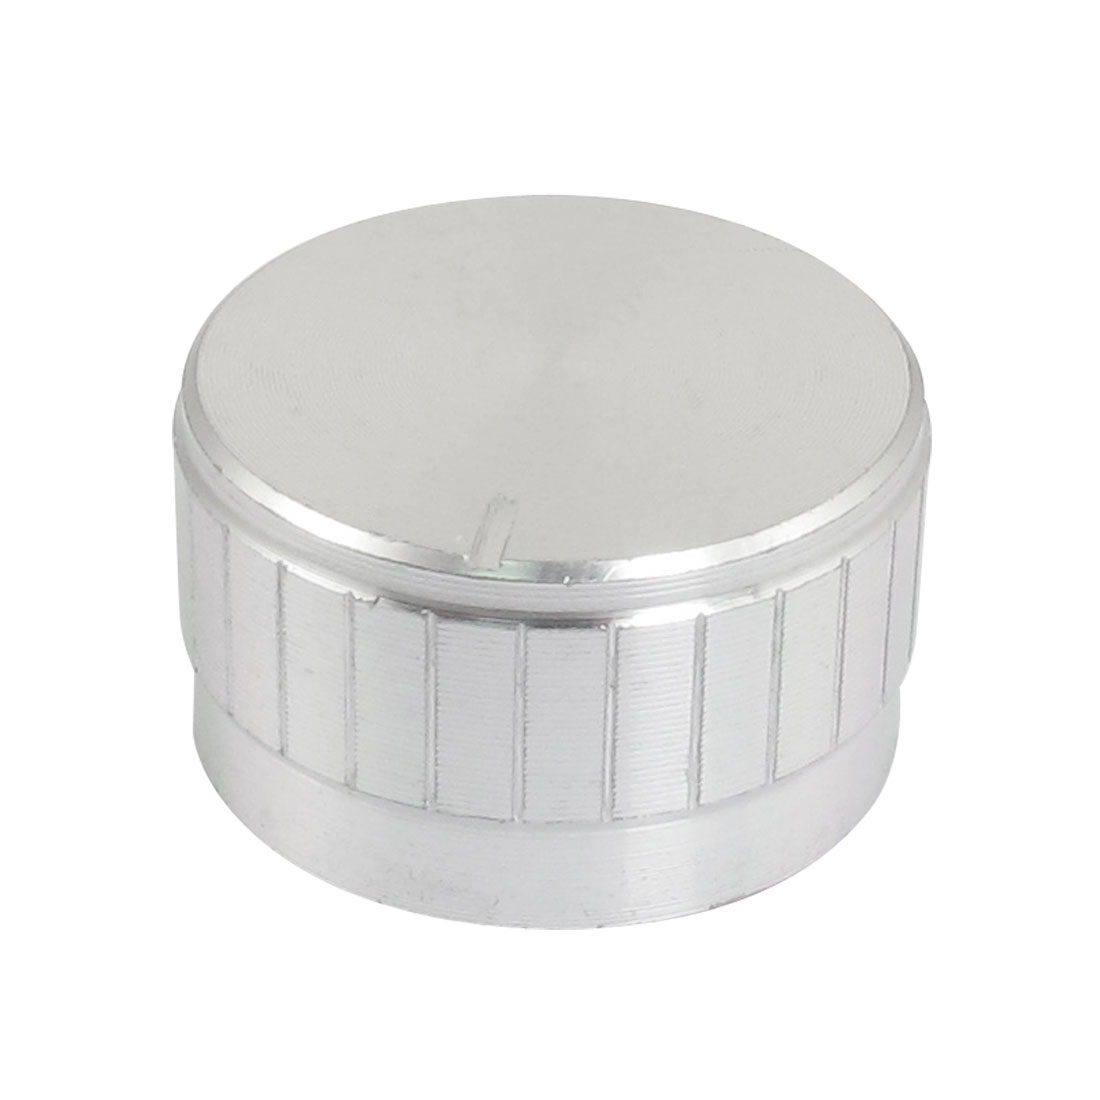 PU Interior 30mm x 17mm Silver Tone Aluminum Knob for Amplifier